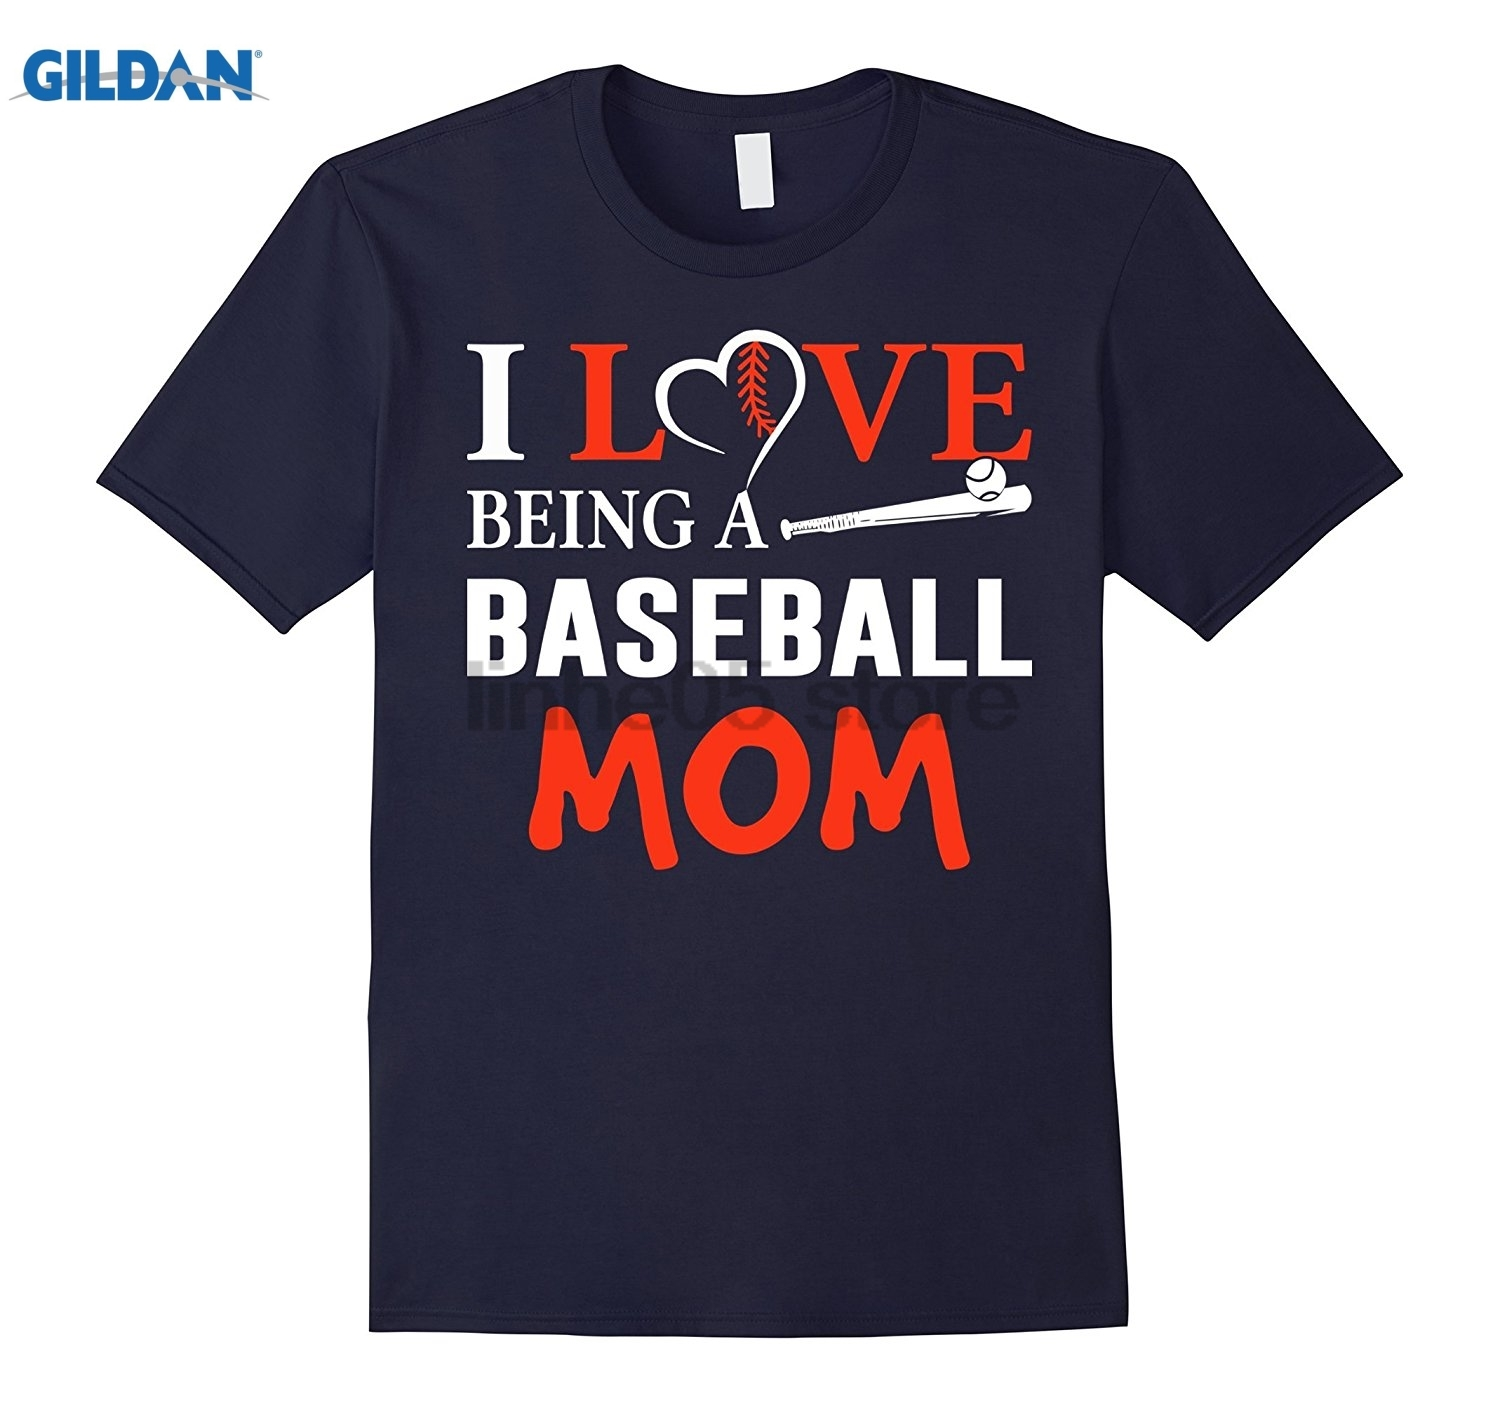 GILDAN I Love Being A Baseball Mom T Shirt, Sporty Mom T Shirt Hot Womens T-shirt